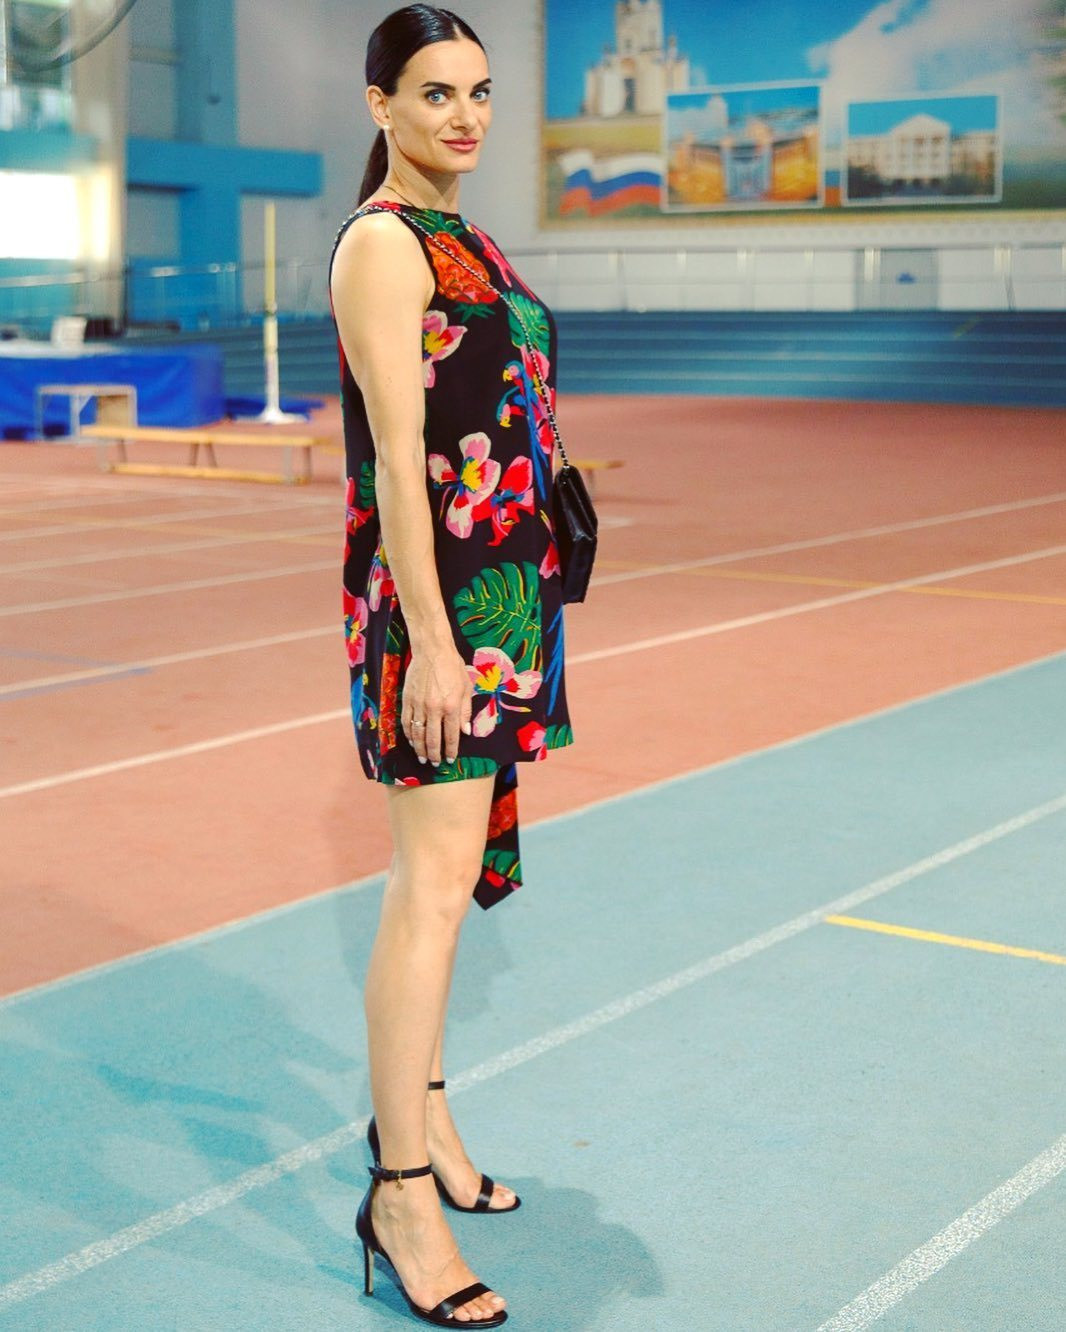 Isinbayeva appointed co-chair of Association of Student Sports Clubs in Russia